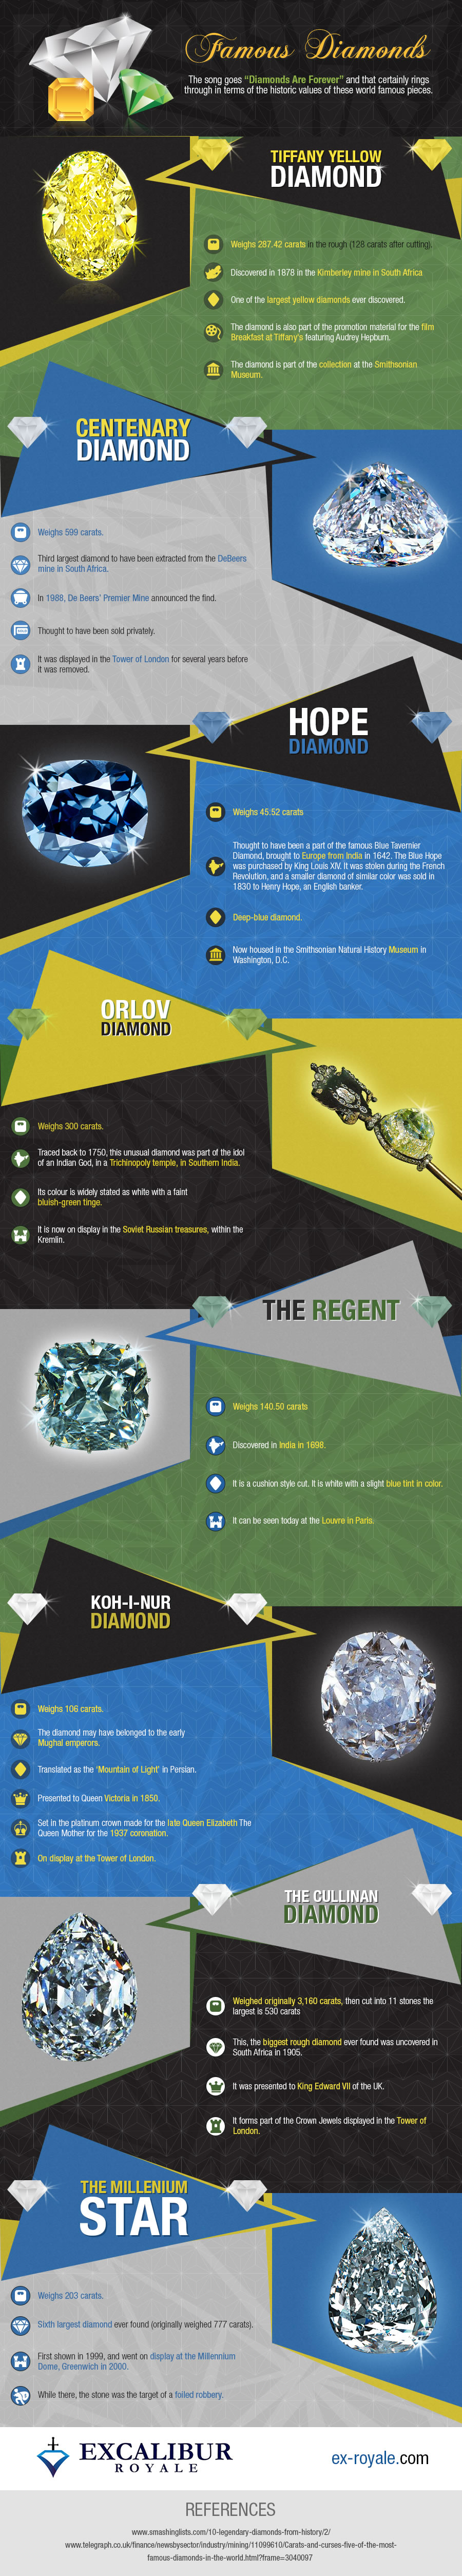 Famous diamonds infographic